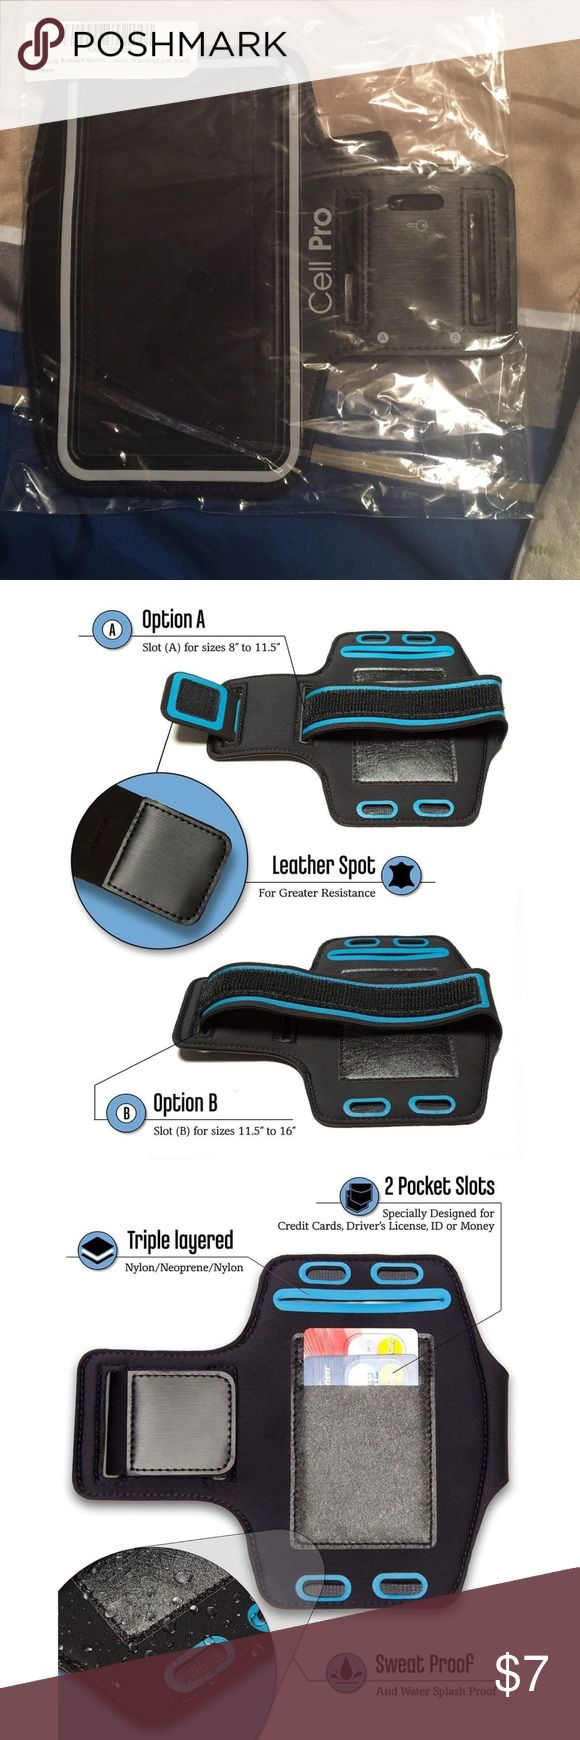 """Universal Sports Armband  (Jet black) Compatible With iPhone 7 Plus / Samsung Galaxy Note 4 5 7 / S6 Plus / S7 Edge (5.5"""" - 5.7"""") Armband is SMALL enough to fit smaller arms, but you can also adjust the Comfortable Soft stretchable VELCRO strap, which allows up to about 16"""" BICEPS - OPTION A: 12.0-16.0"""" [30.4 - 40.5 cm] or OPTION B: 8.0-11.5"""" [20.3-29.2 cm] TOUCHSCREEN works PERFECT through the clear cover! The REFLECTIVE BAND makes you more visible in the night so you can feel safe all the…"""